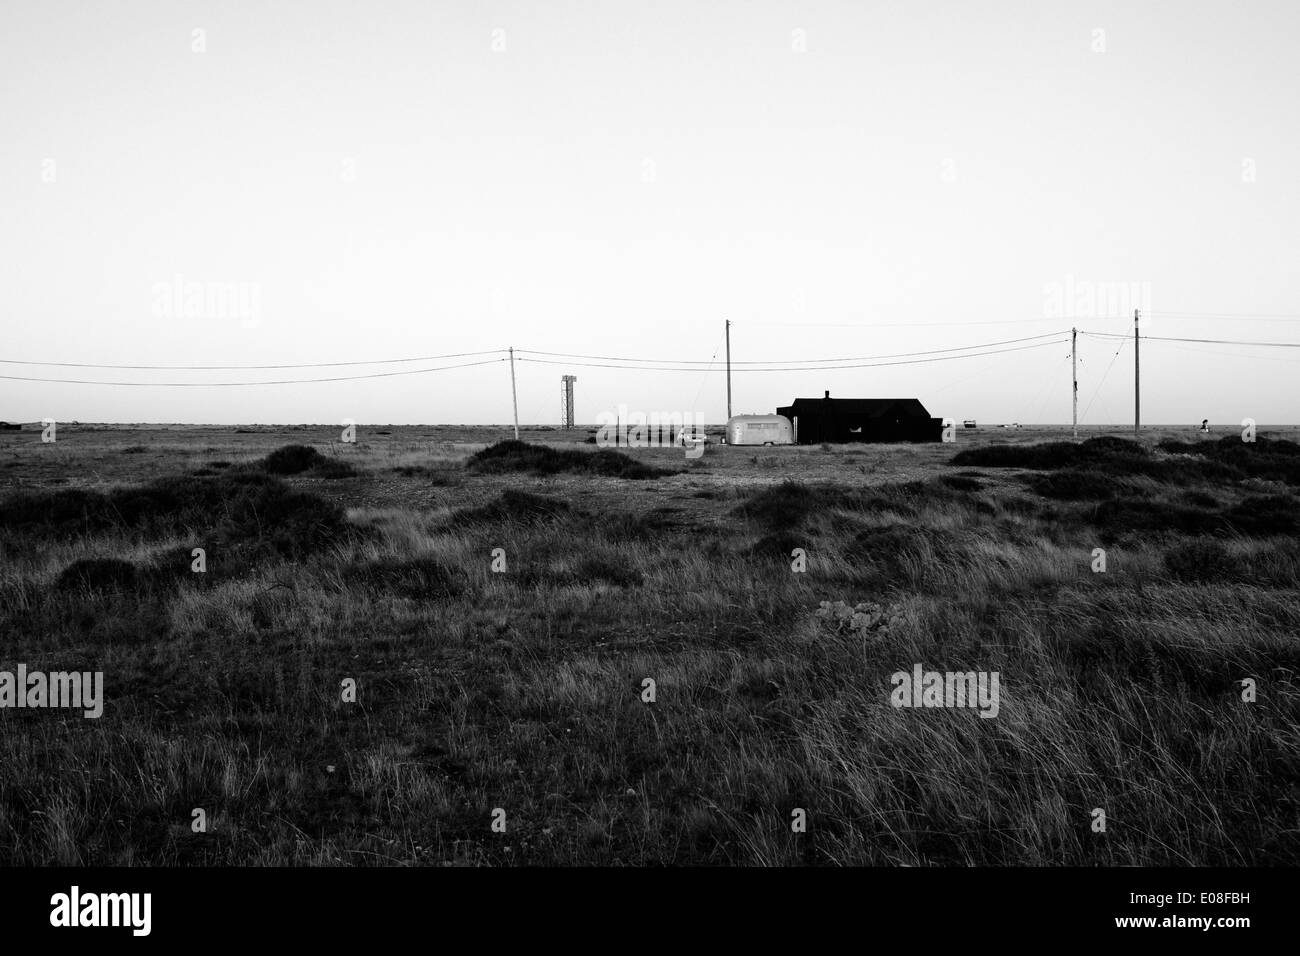 Black and white landscape shot of desolate building in Dungeness, Kent, United Kingdom - Stock Image